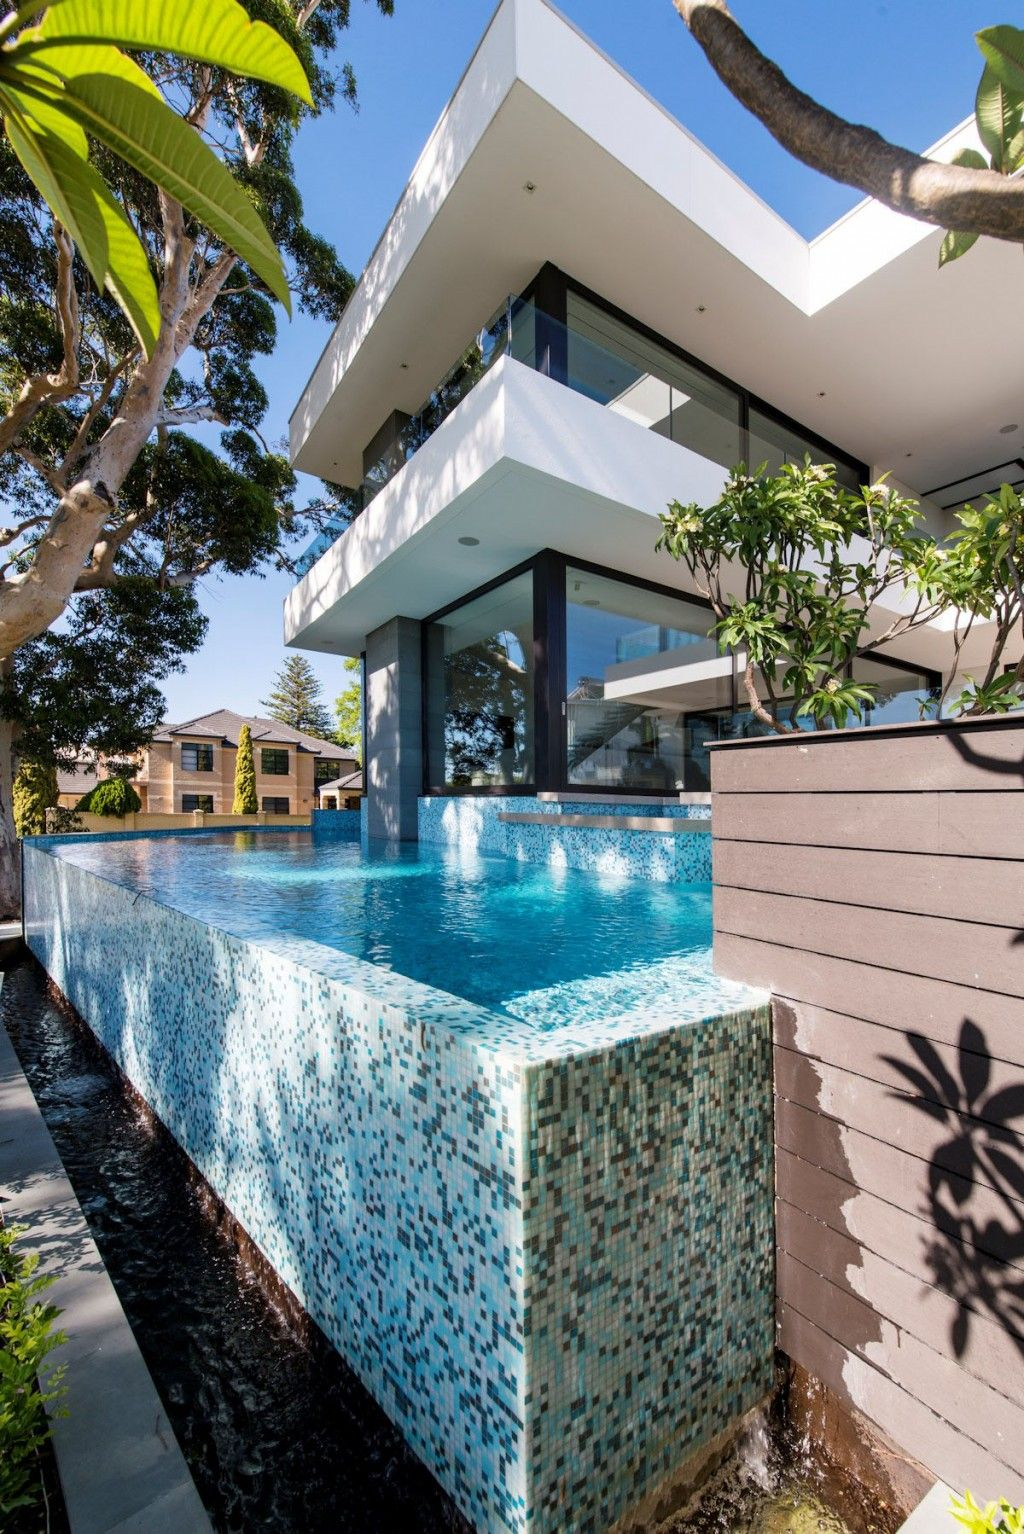 Architecture infinity pool and tile timeless house design exterior white architecture design exterior timeless house